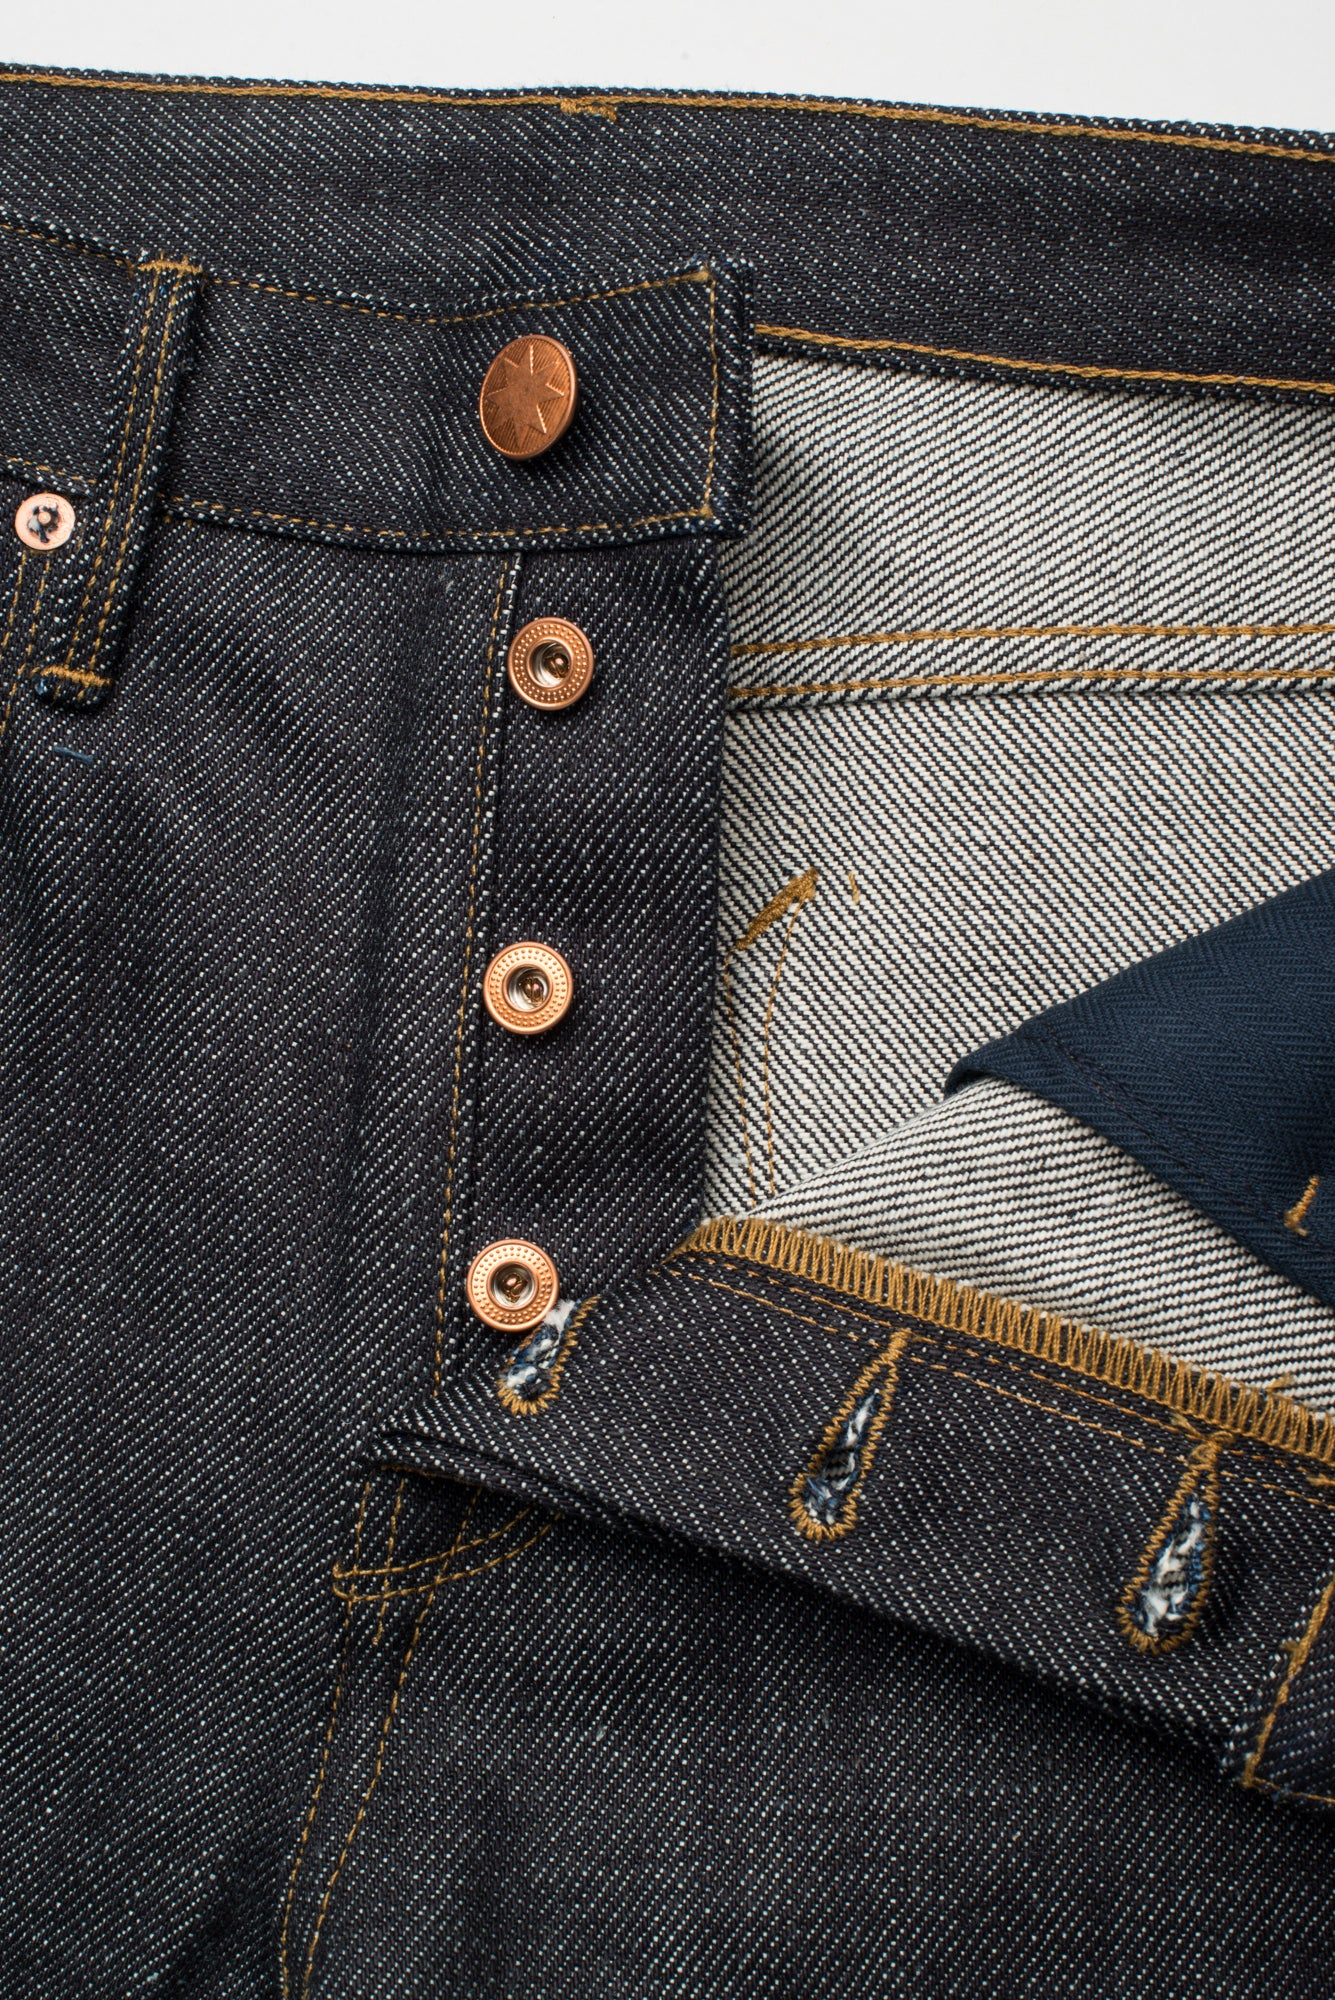 Portola Taper Raw 20 oz Japanese Denim Fly Detail